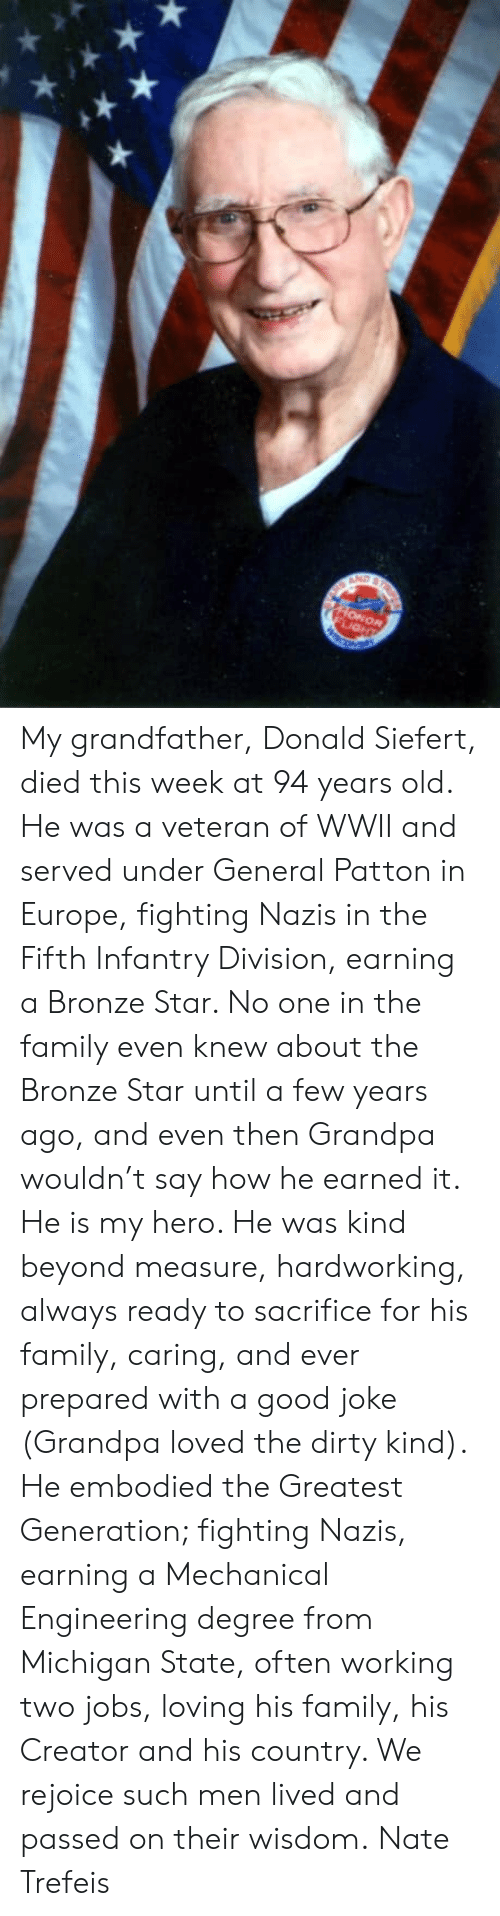 michigan state: My grandfather, Donald Siefert, died this week at 94 years old.   He was a veteran of WWII and served under General Patton in Europe, fighting Nazis in the Fifth Infantry Division, earning a Bronze Star. No one in the family even knew about the Bronze Star until a few years ago, and even then Grandpa wouldn't say how he earned it.   He is my hero. He was kind beyond measure, hardworking, always ready to sacrifice for his family, caring, and ever prepared with a good joke (Grandpa loved the dirty kind).   He embodied the Greatest Generation; fighting Nazis, earning a Mechanical Engineering degree from Michigan State, often working two jobs, loving his family, his Creator and his country.   We rejoice such men lived and passed on their wisdom.  Nate Trefeis